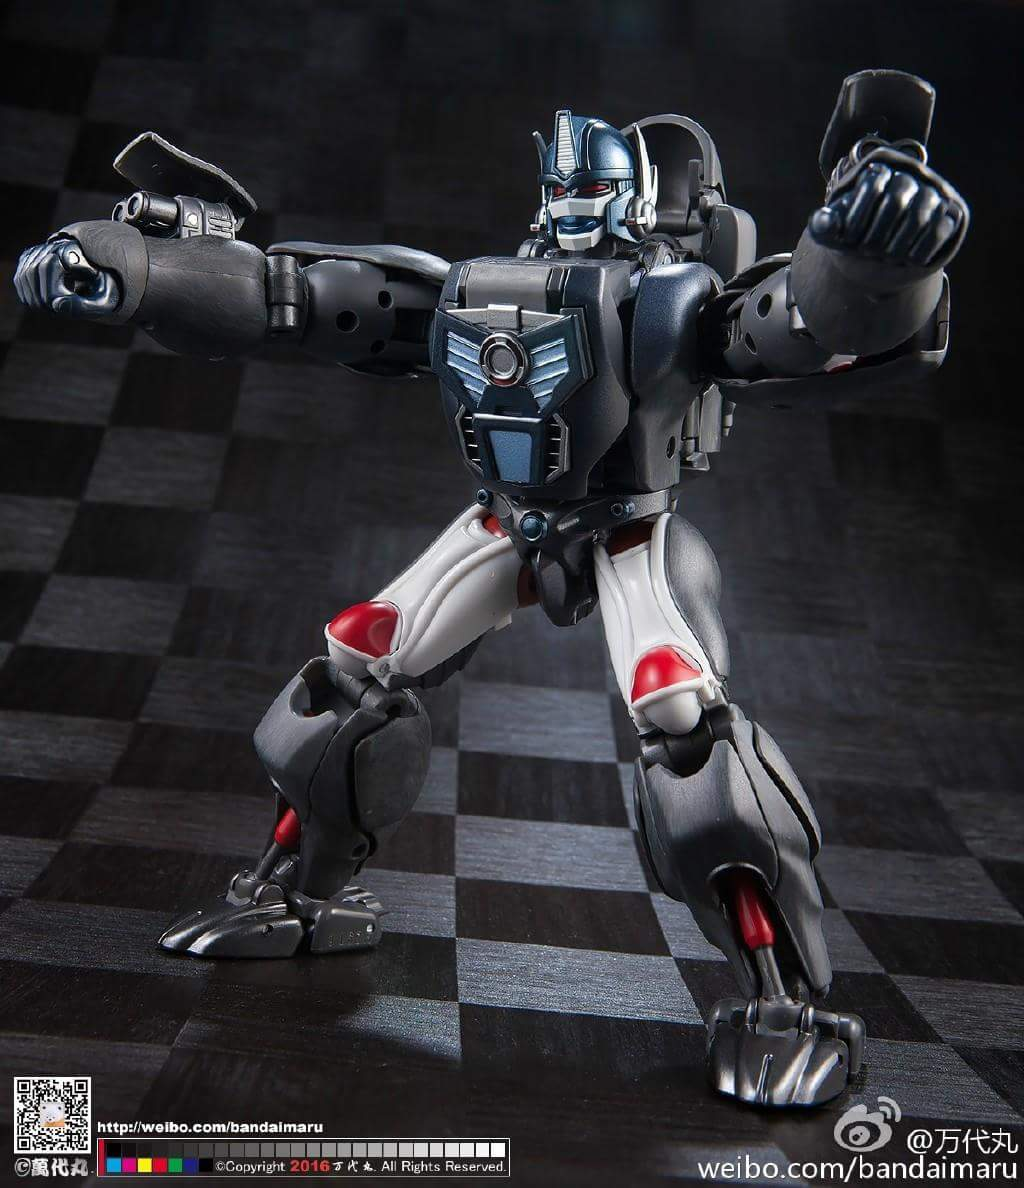 [Masterpiece] MP-32, MP-38 Optimus Primal et MP-38+ Burning Convoy (Beast Wars) - Page 4 LiIu9cd1